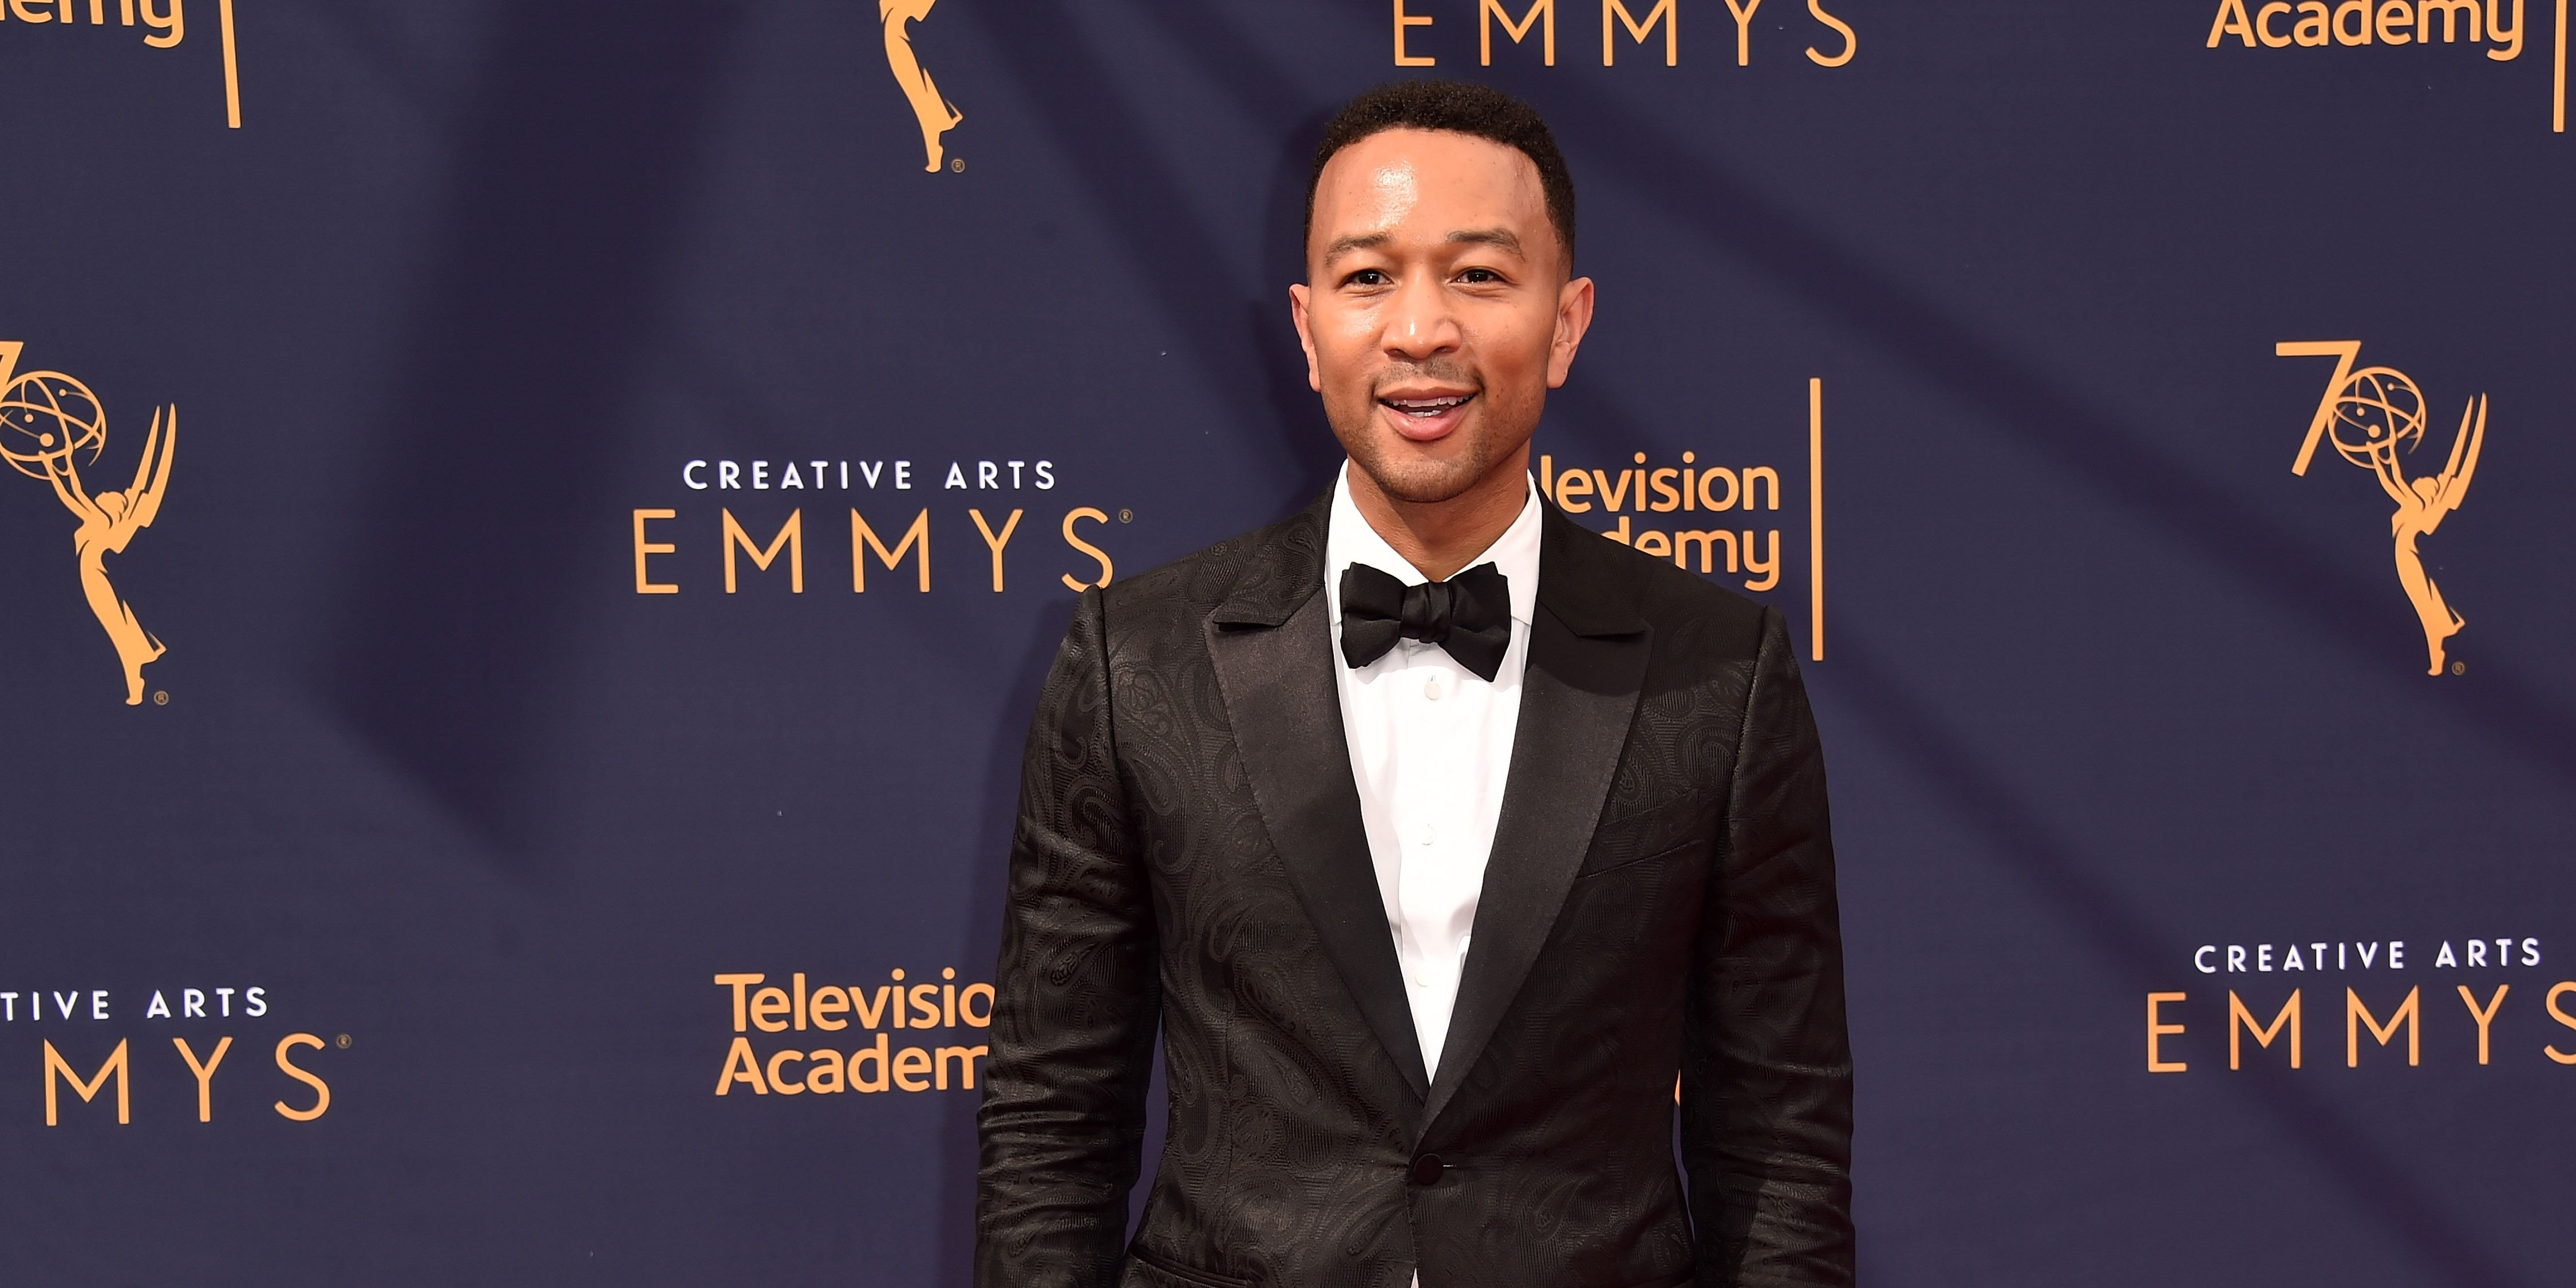 John Legend Joins 'The Voice' as a New Coach for Season 16